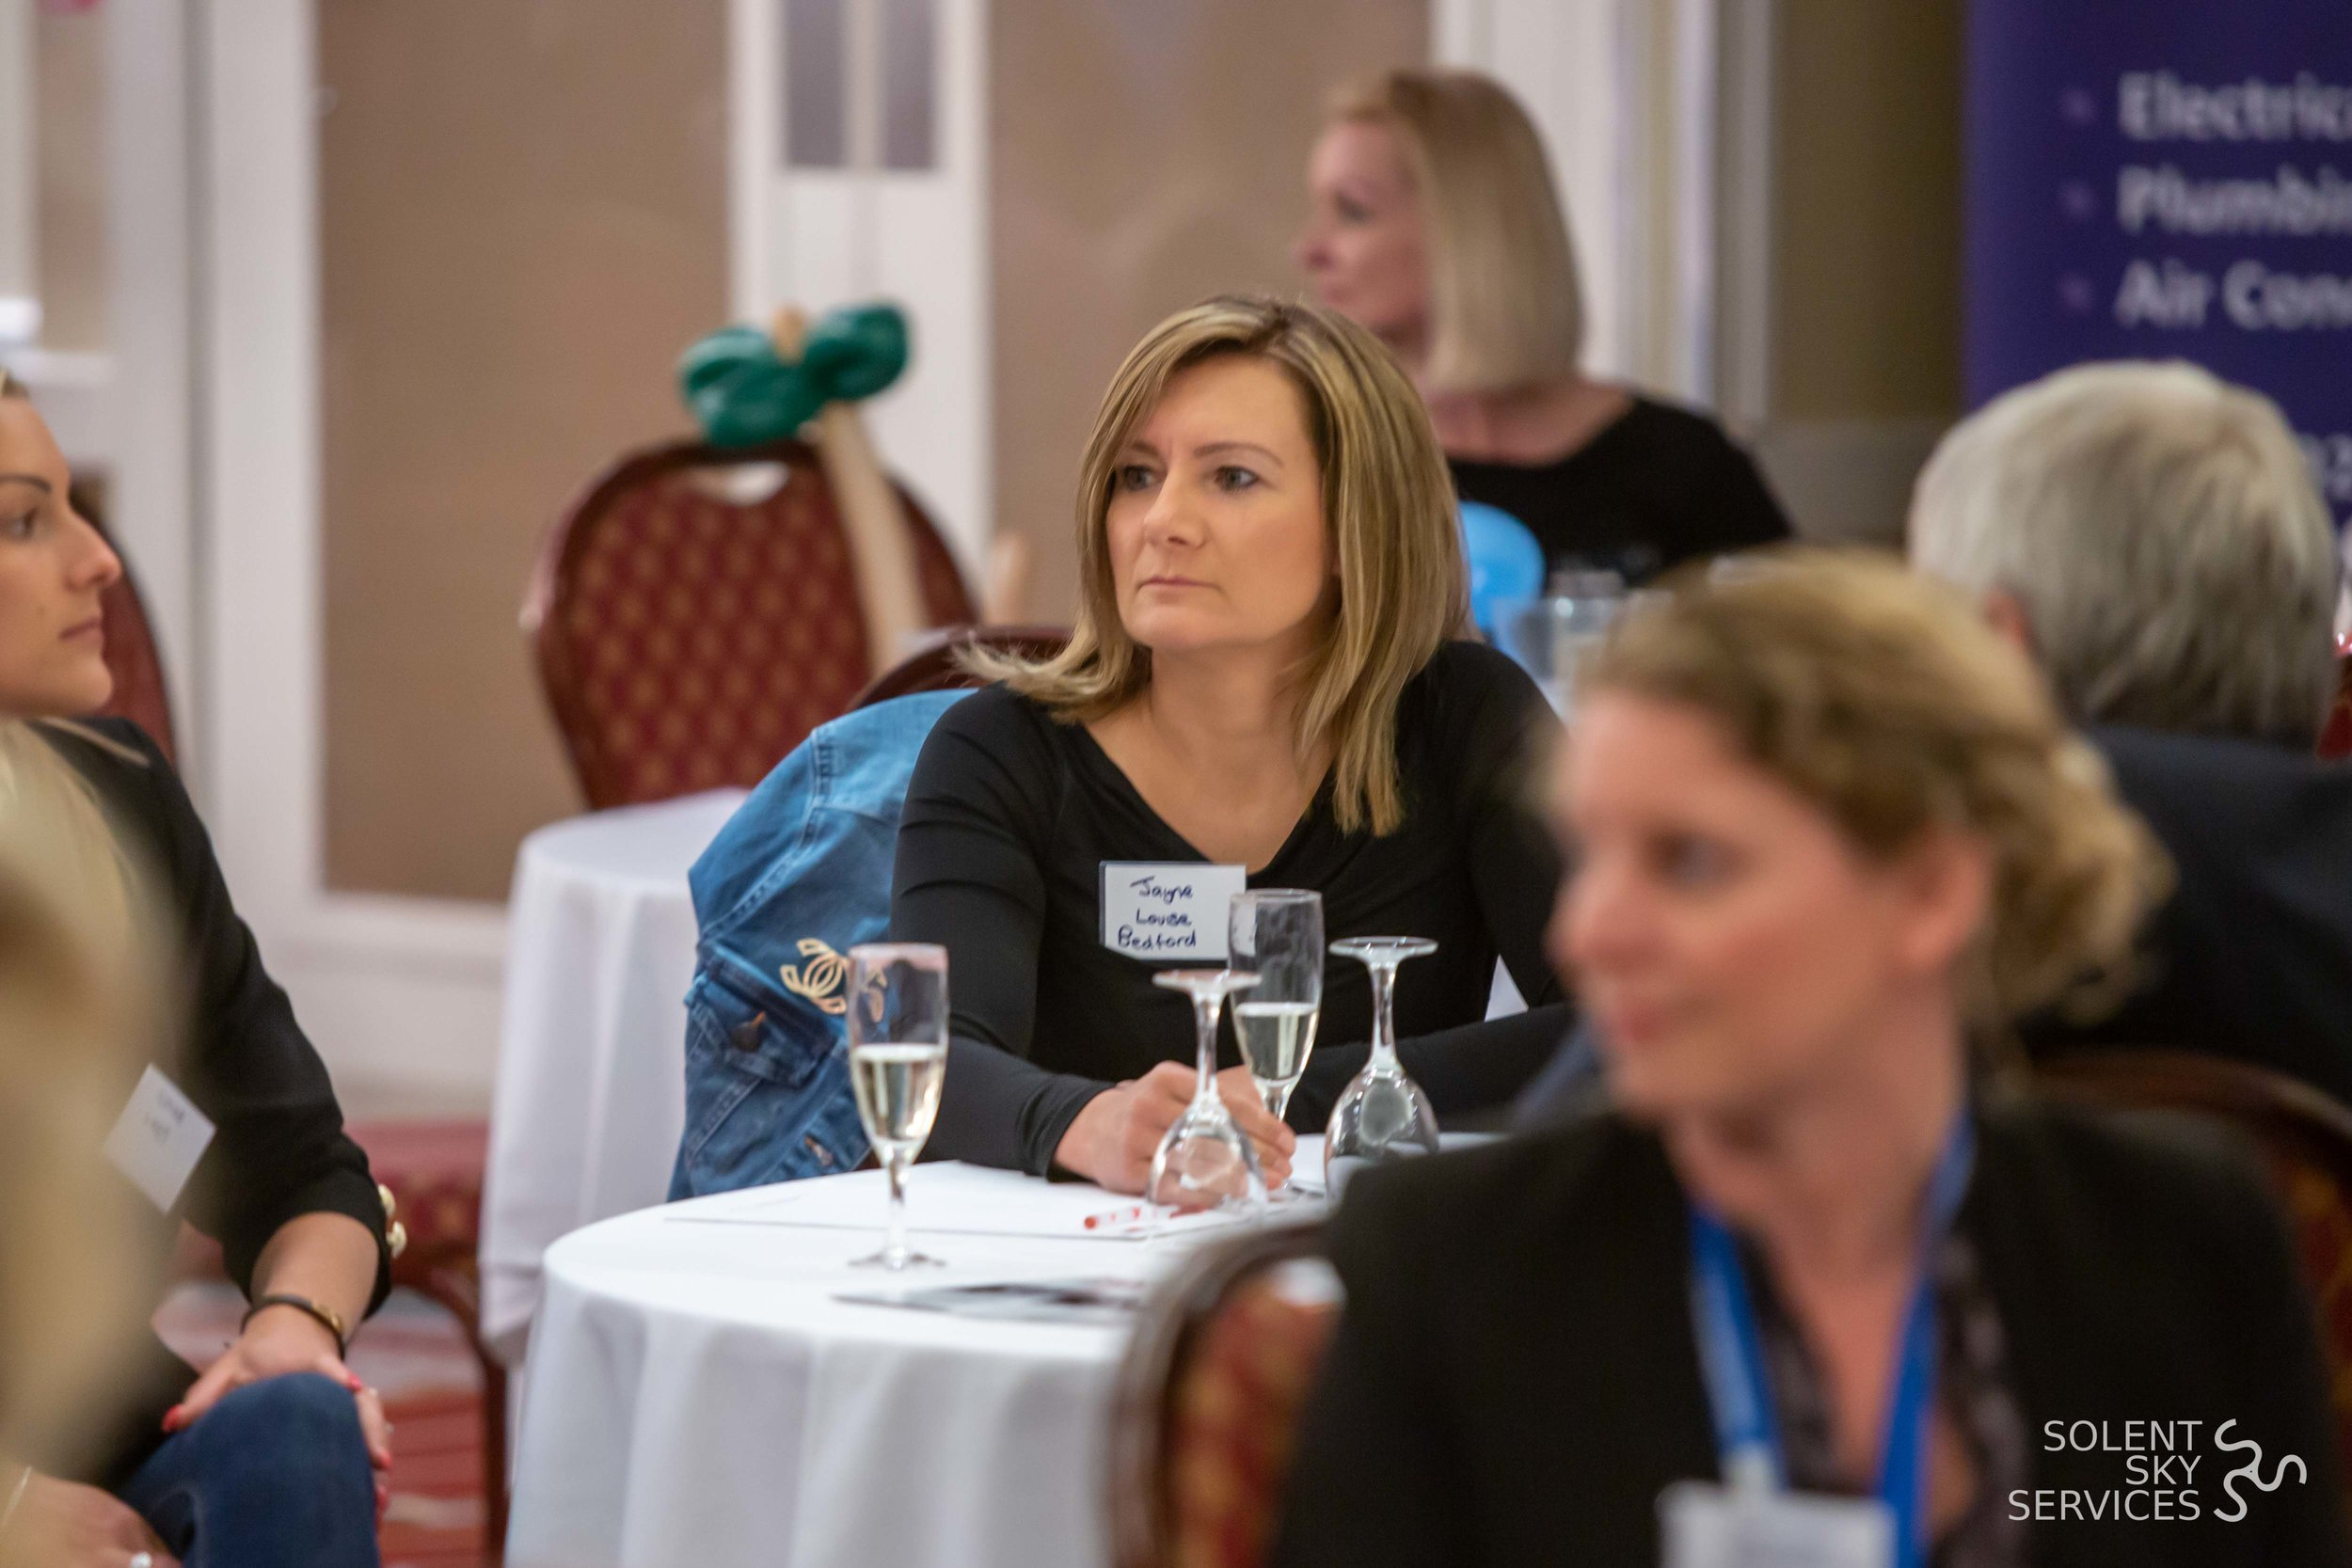 Synergy Success Networking Event #2 - Solent Sky Services-32.JPG